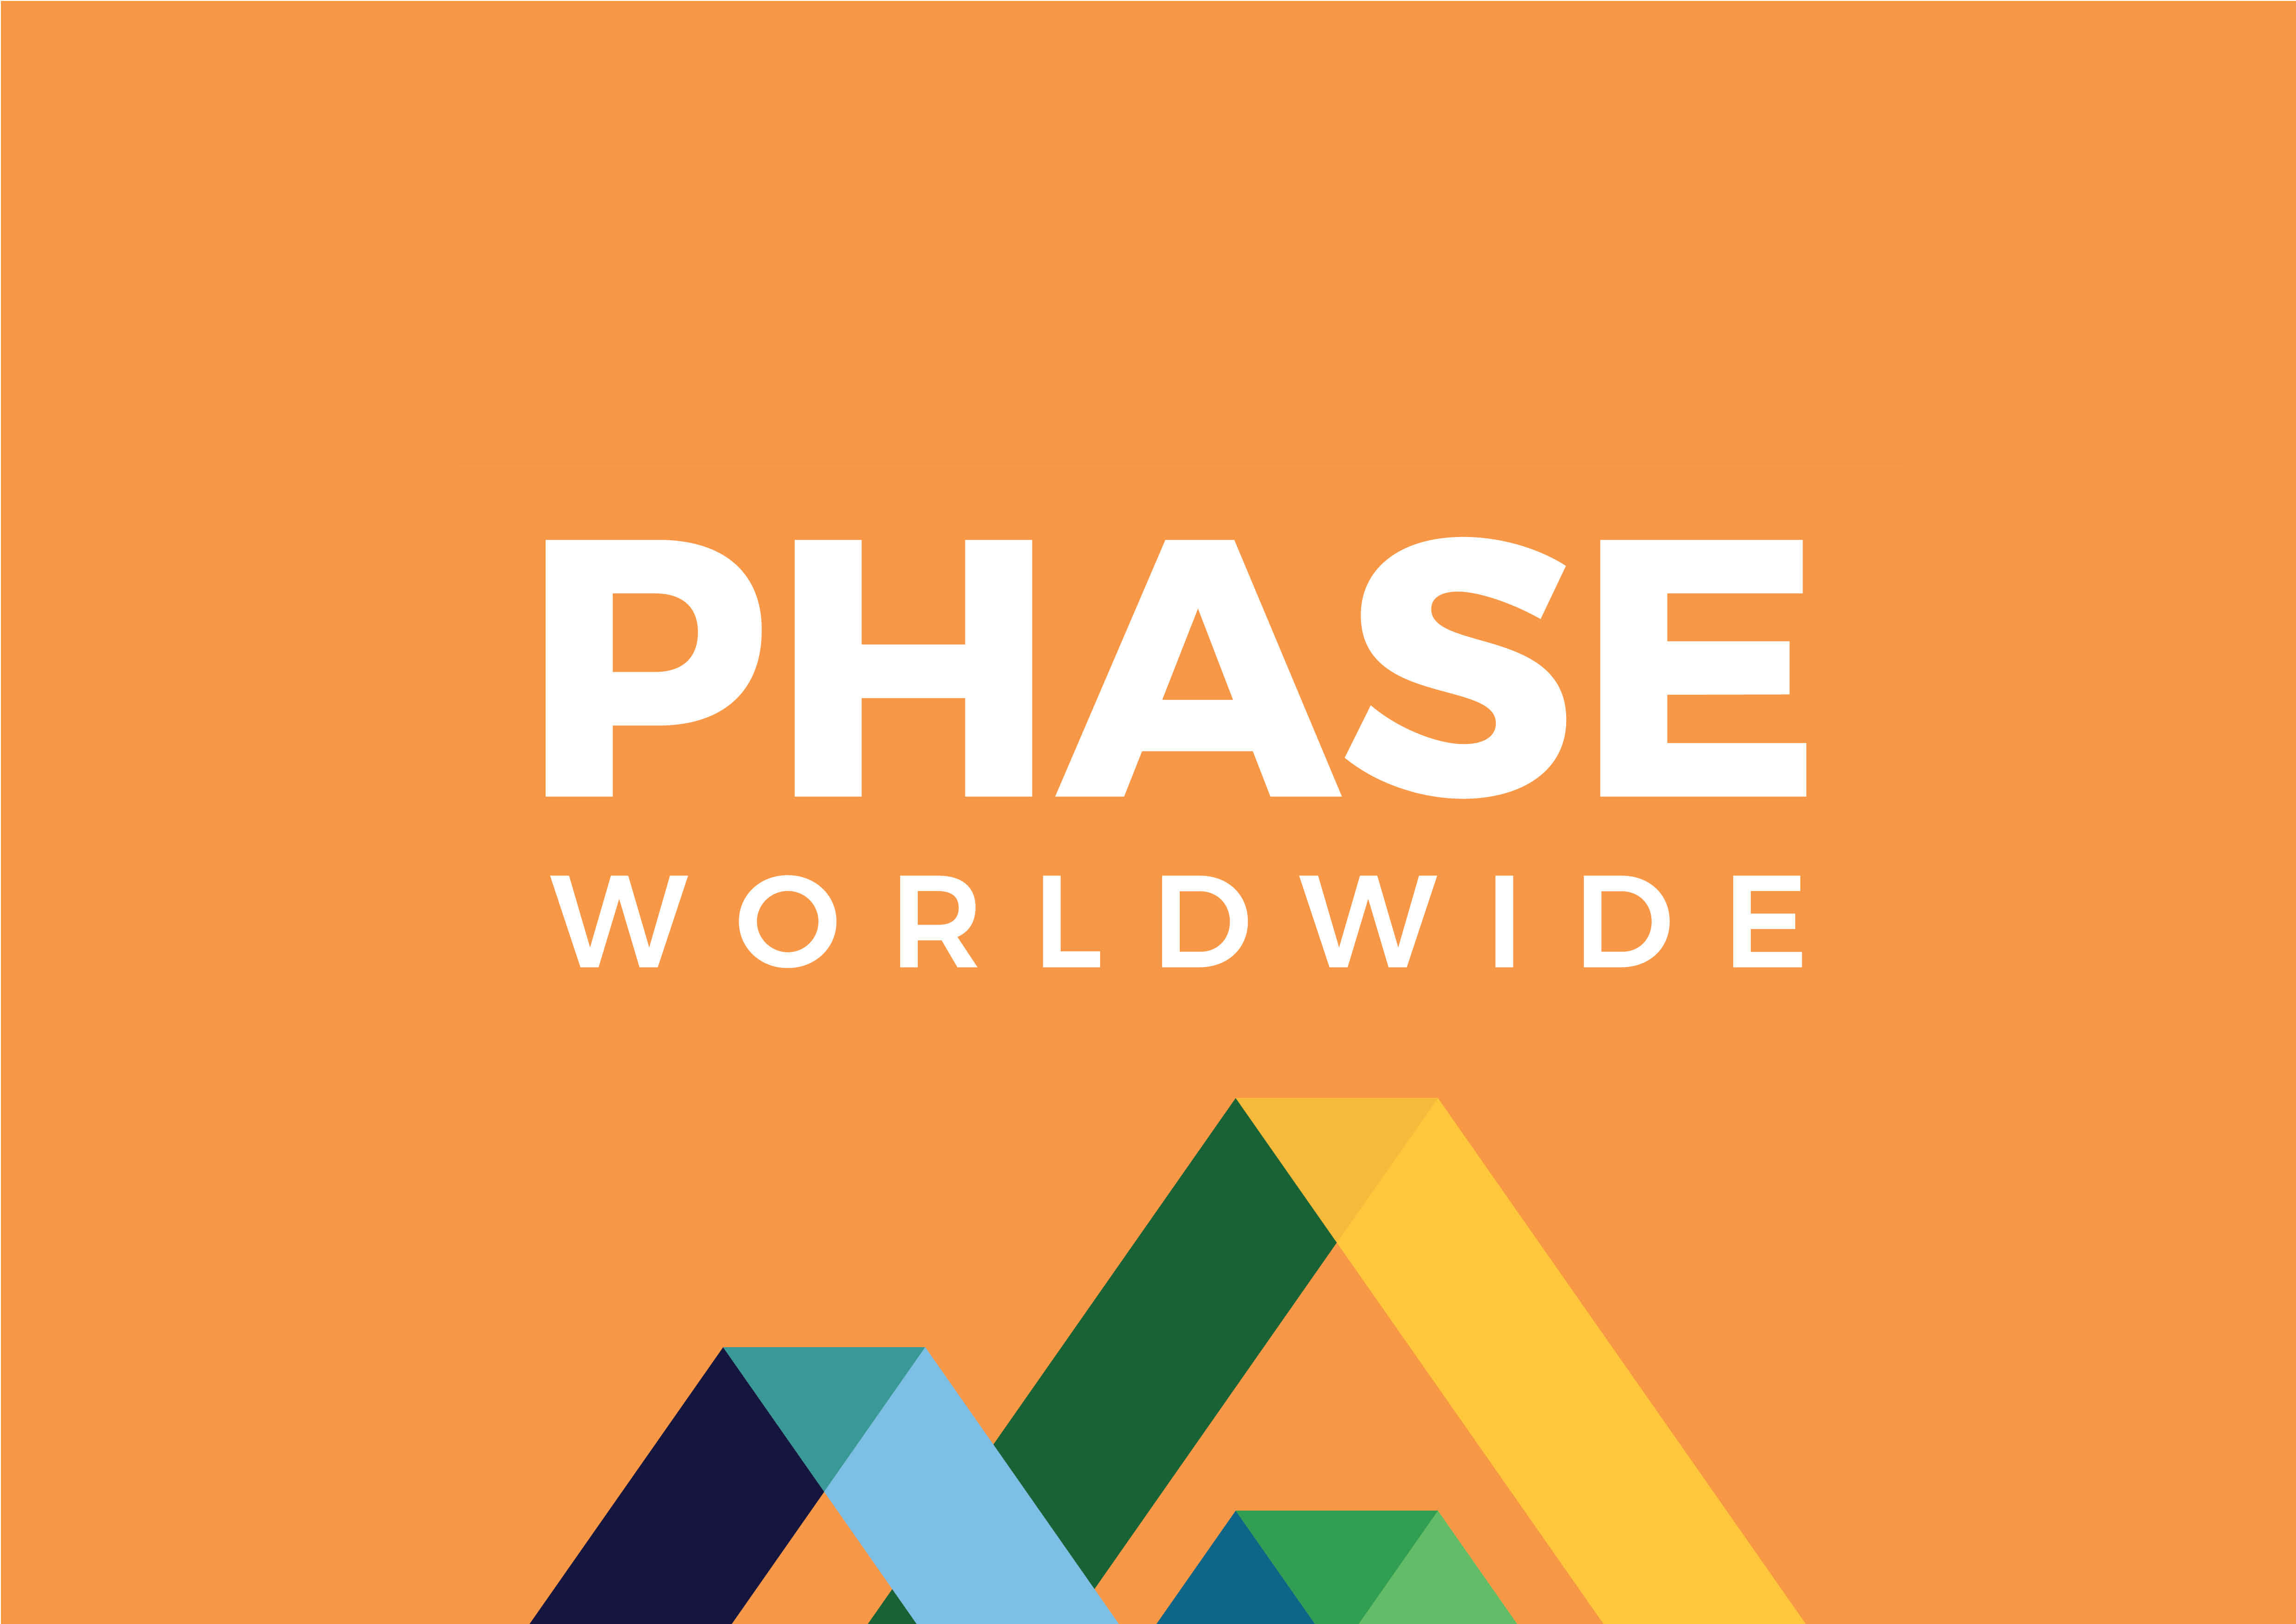 Since 2005, Phase Worldwide have worked to create opportunities in some of the most remote communities in the world. By supporting health, education and livelihoods, they change lives and make a lasting difference. I worked with the team, based in Bristol, on their annual report and demonstrating all their great work to their supporters.